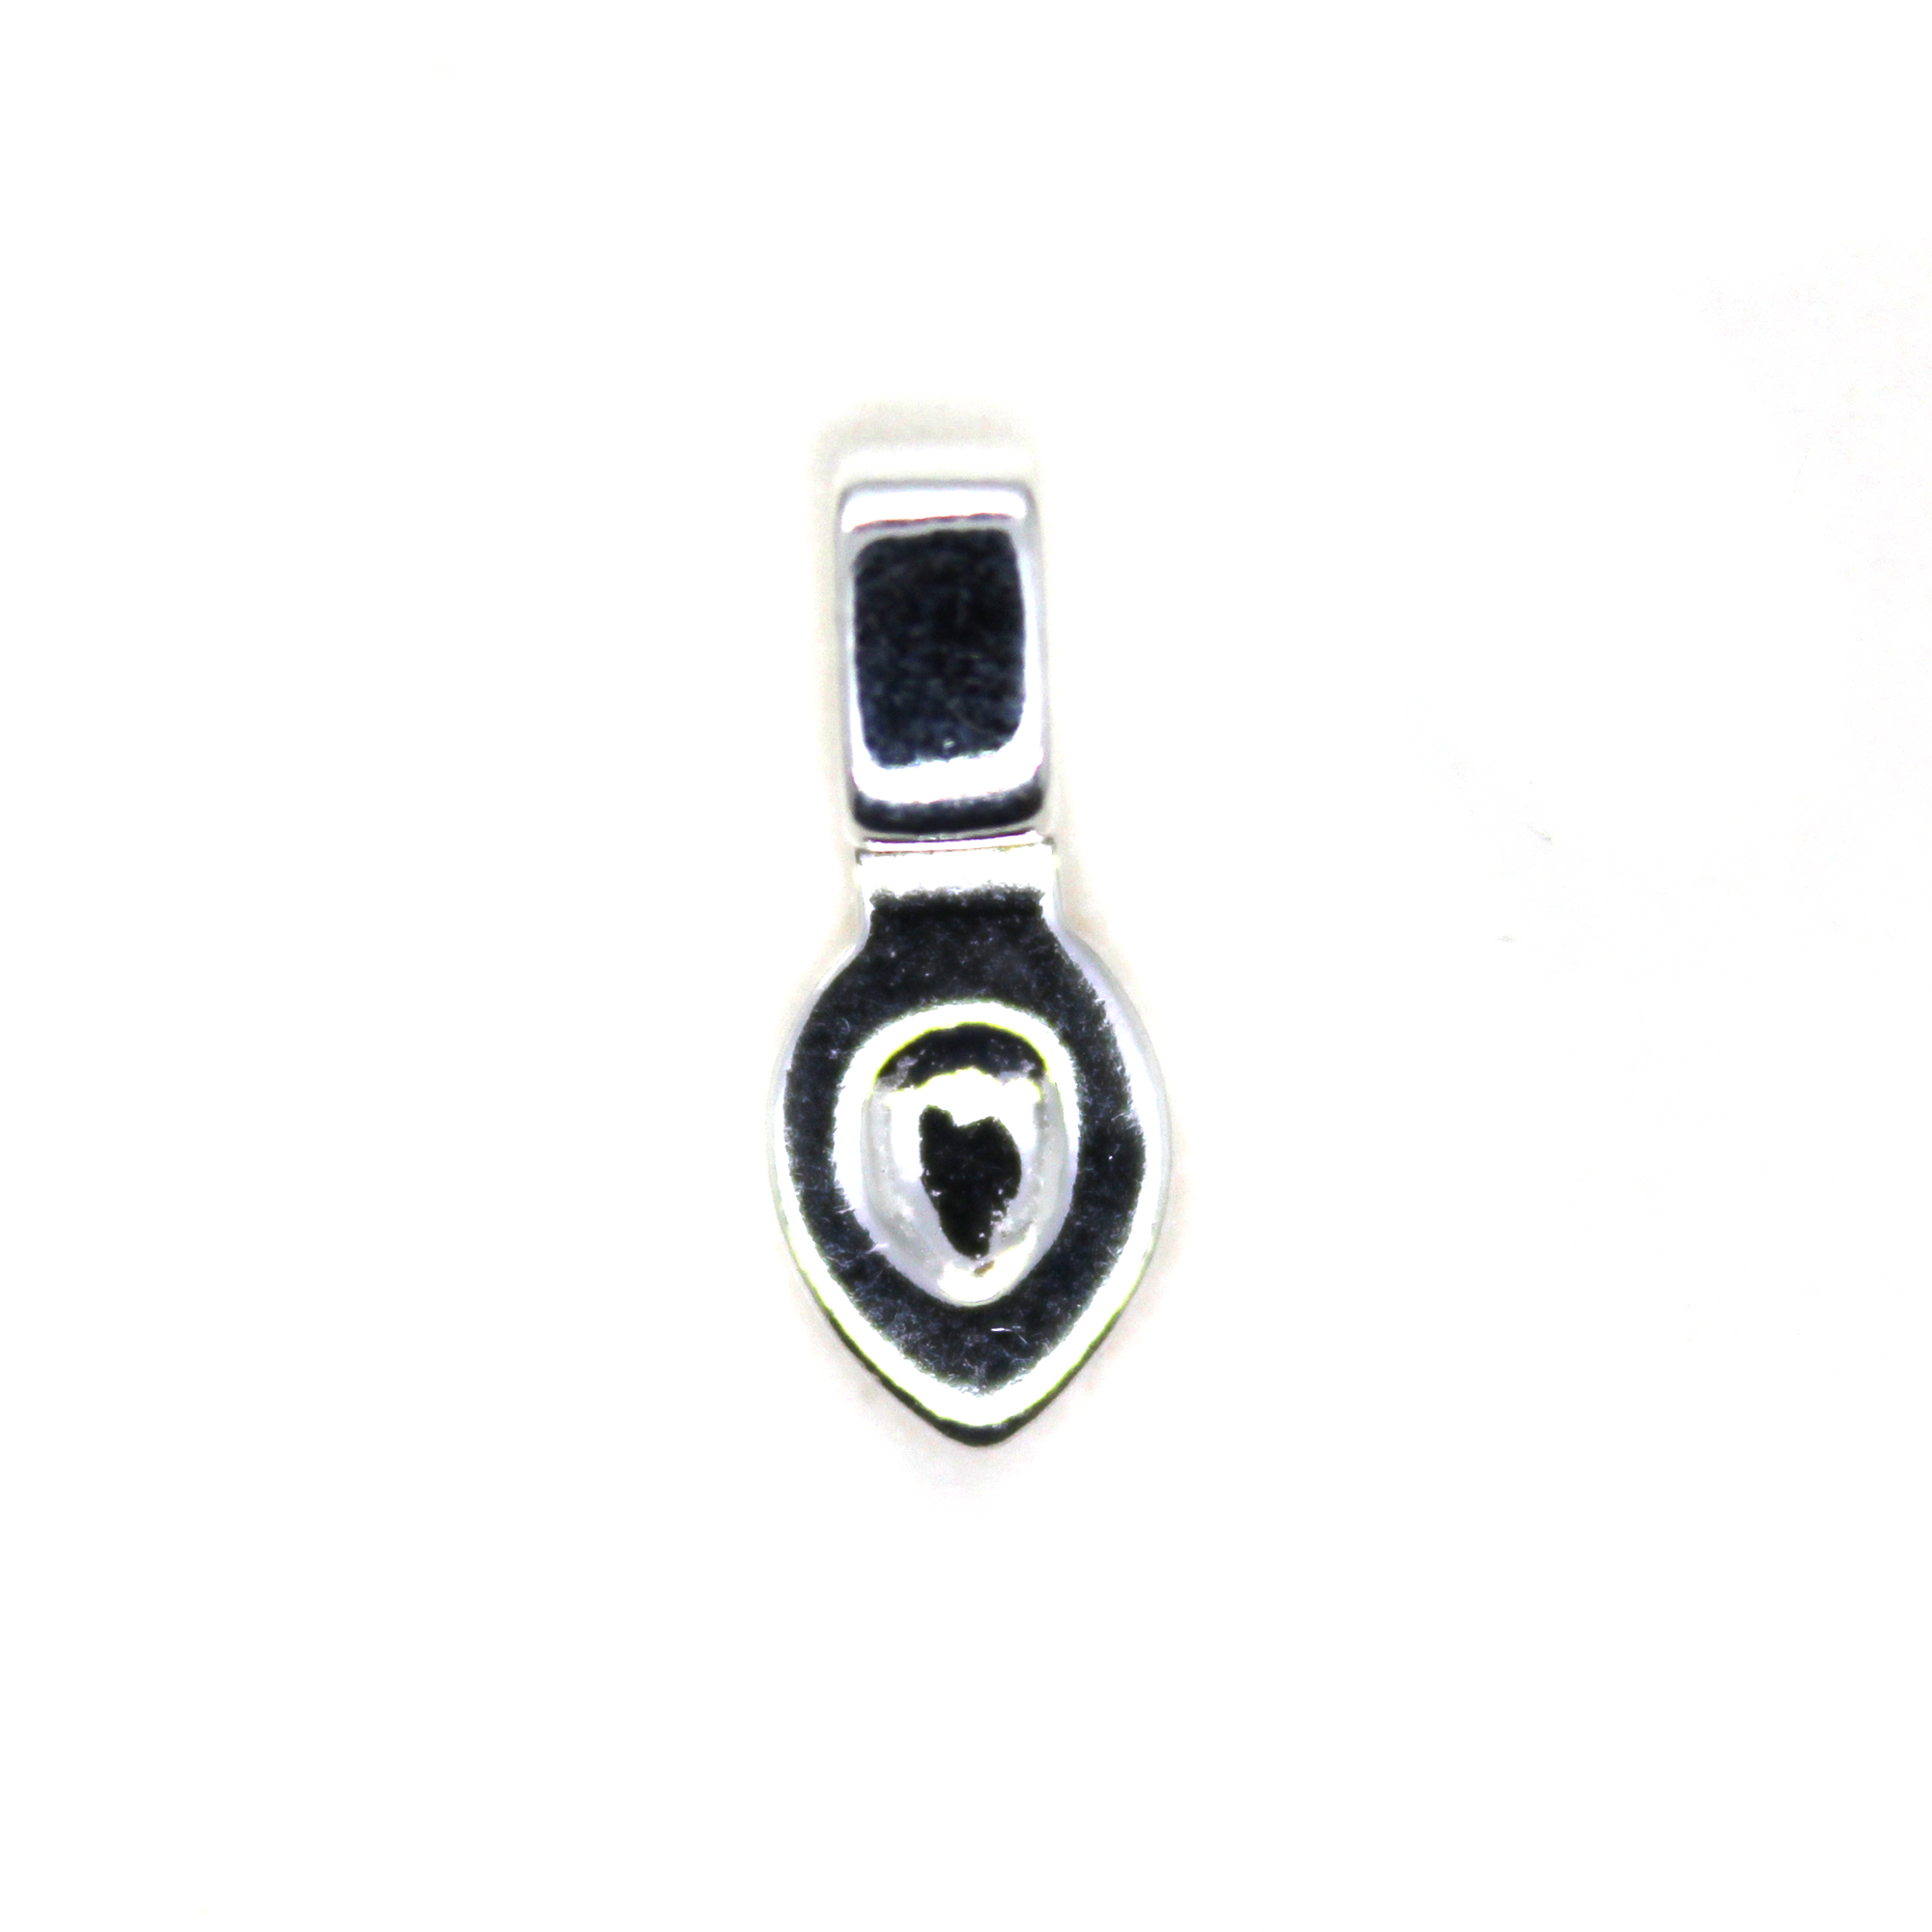 Bail, Smooth Glue-on Sterling Silver with a teardrop shape pad, 12mm X 5mm - 1pc